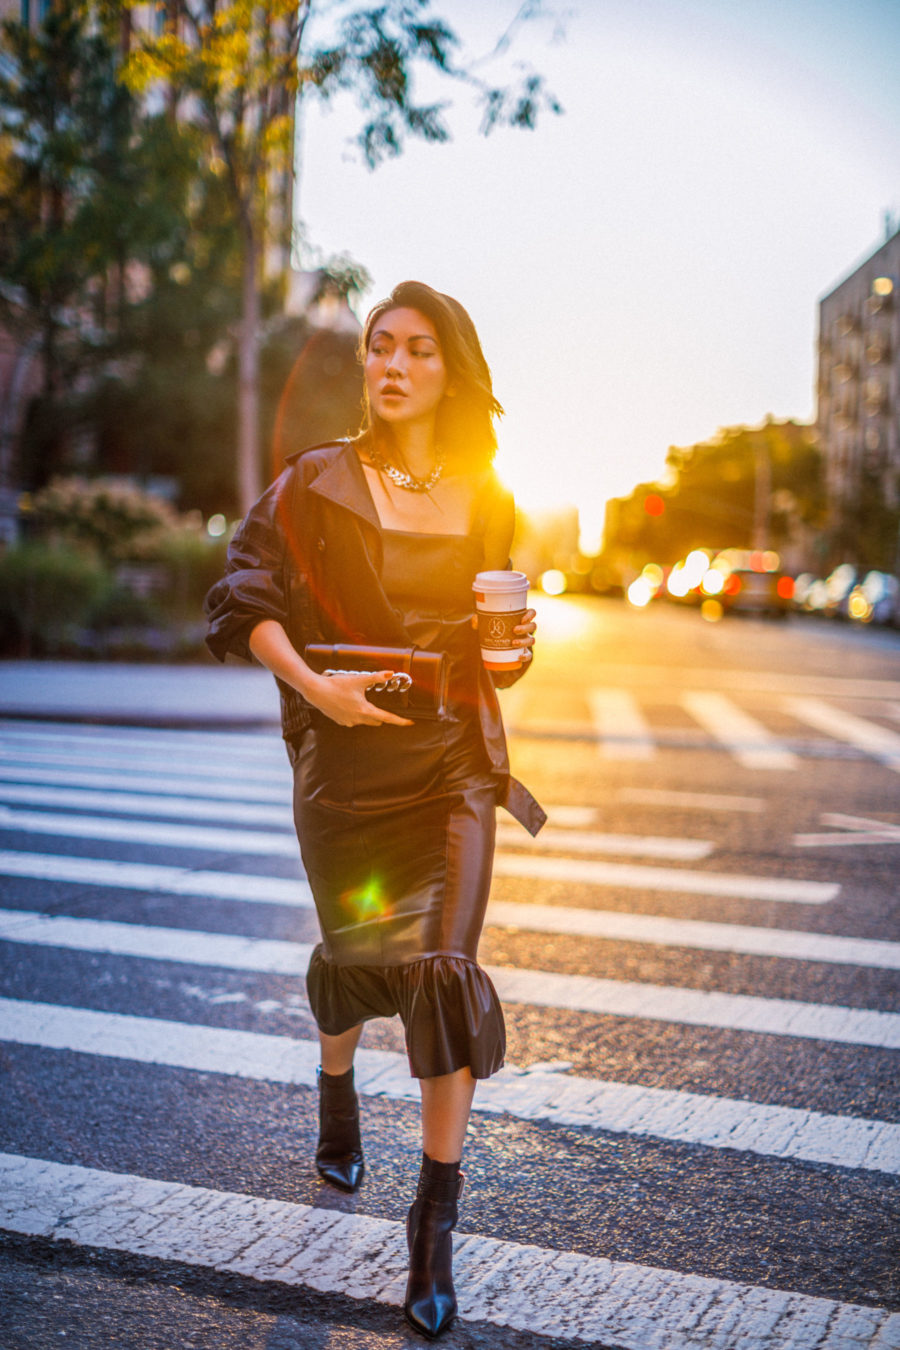 blogging trends of 2019, Leather Jacket Styles Everyone Needs in Their Wardrobe = leather outfit, brown leather jacket, leather dress, fall 2018 outfit inspiration // Notjessfashion.com